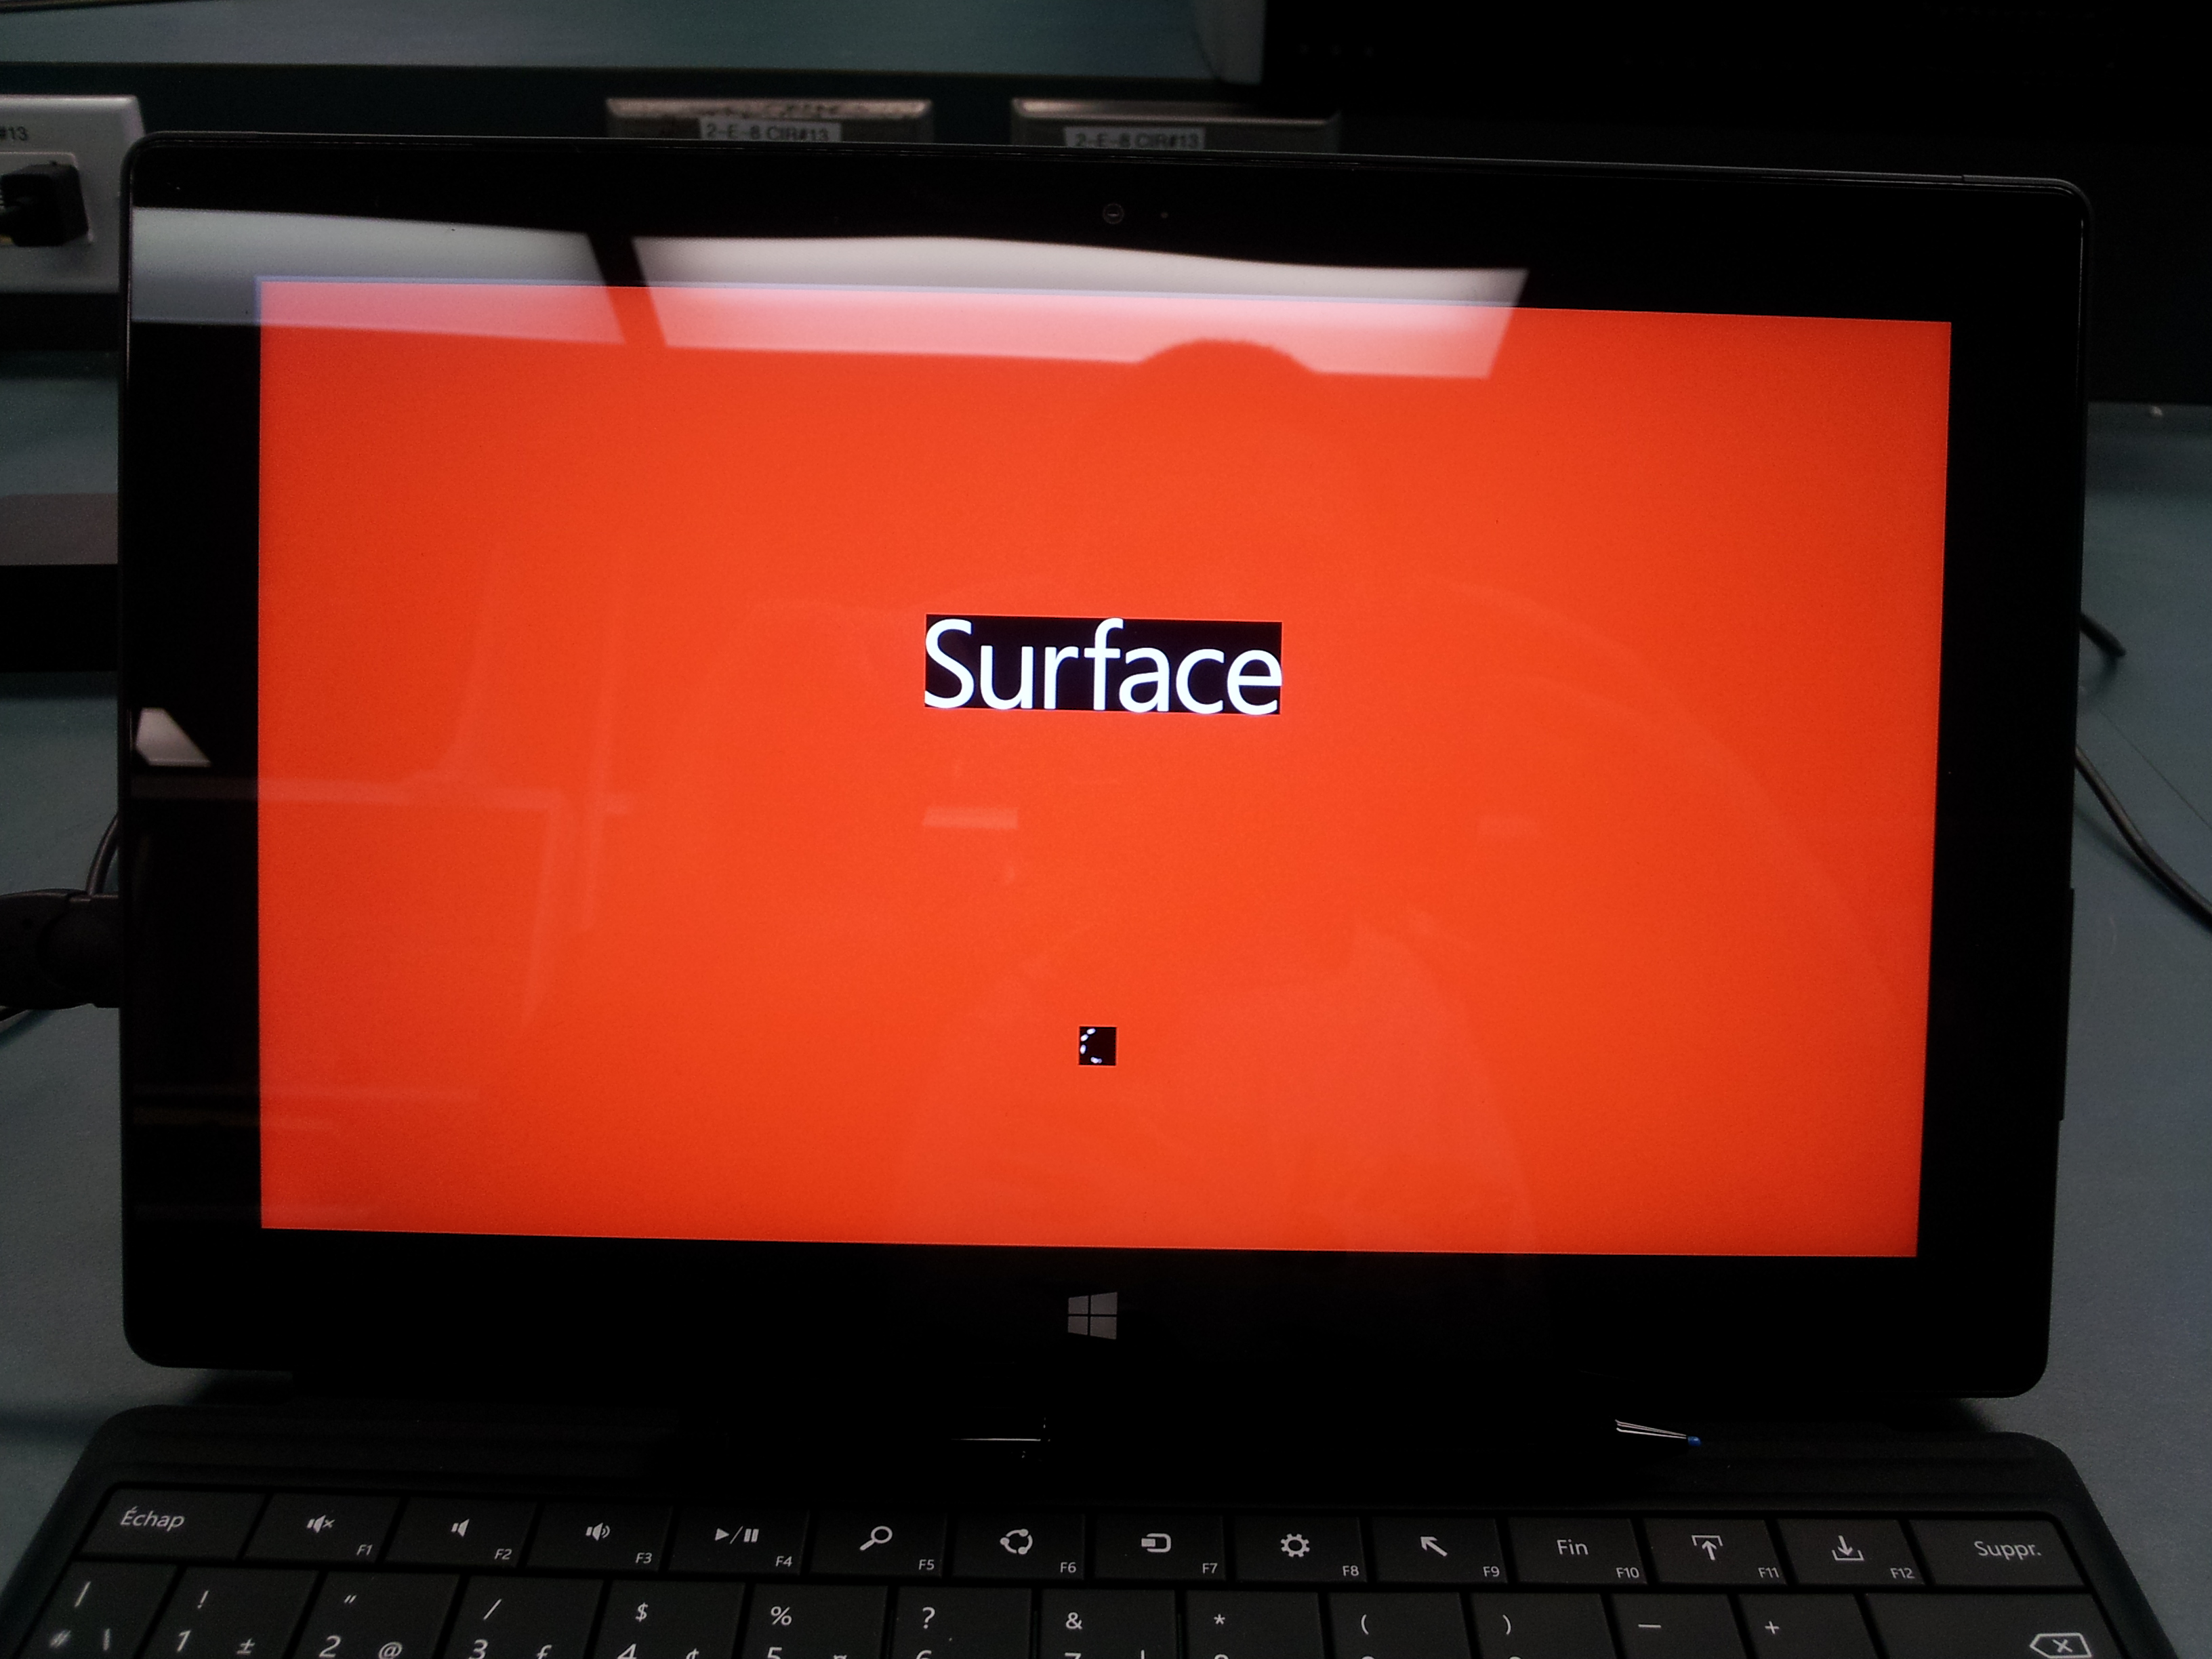 A recent Microsoft System Update can cause a Red Screen